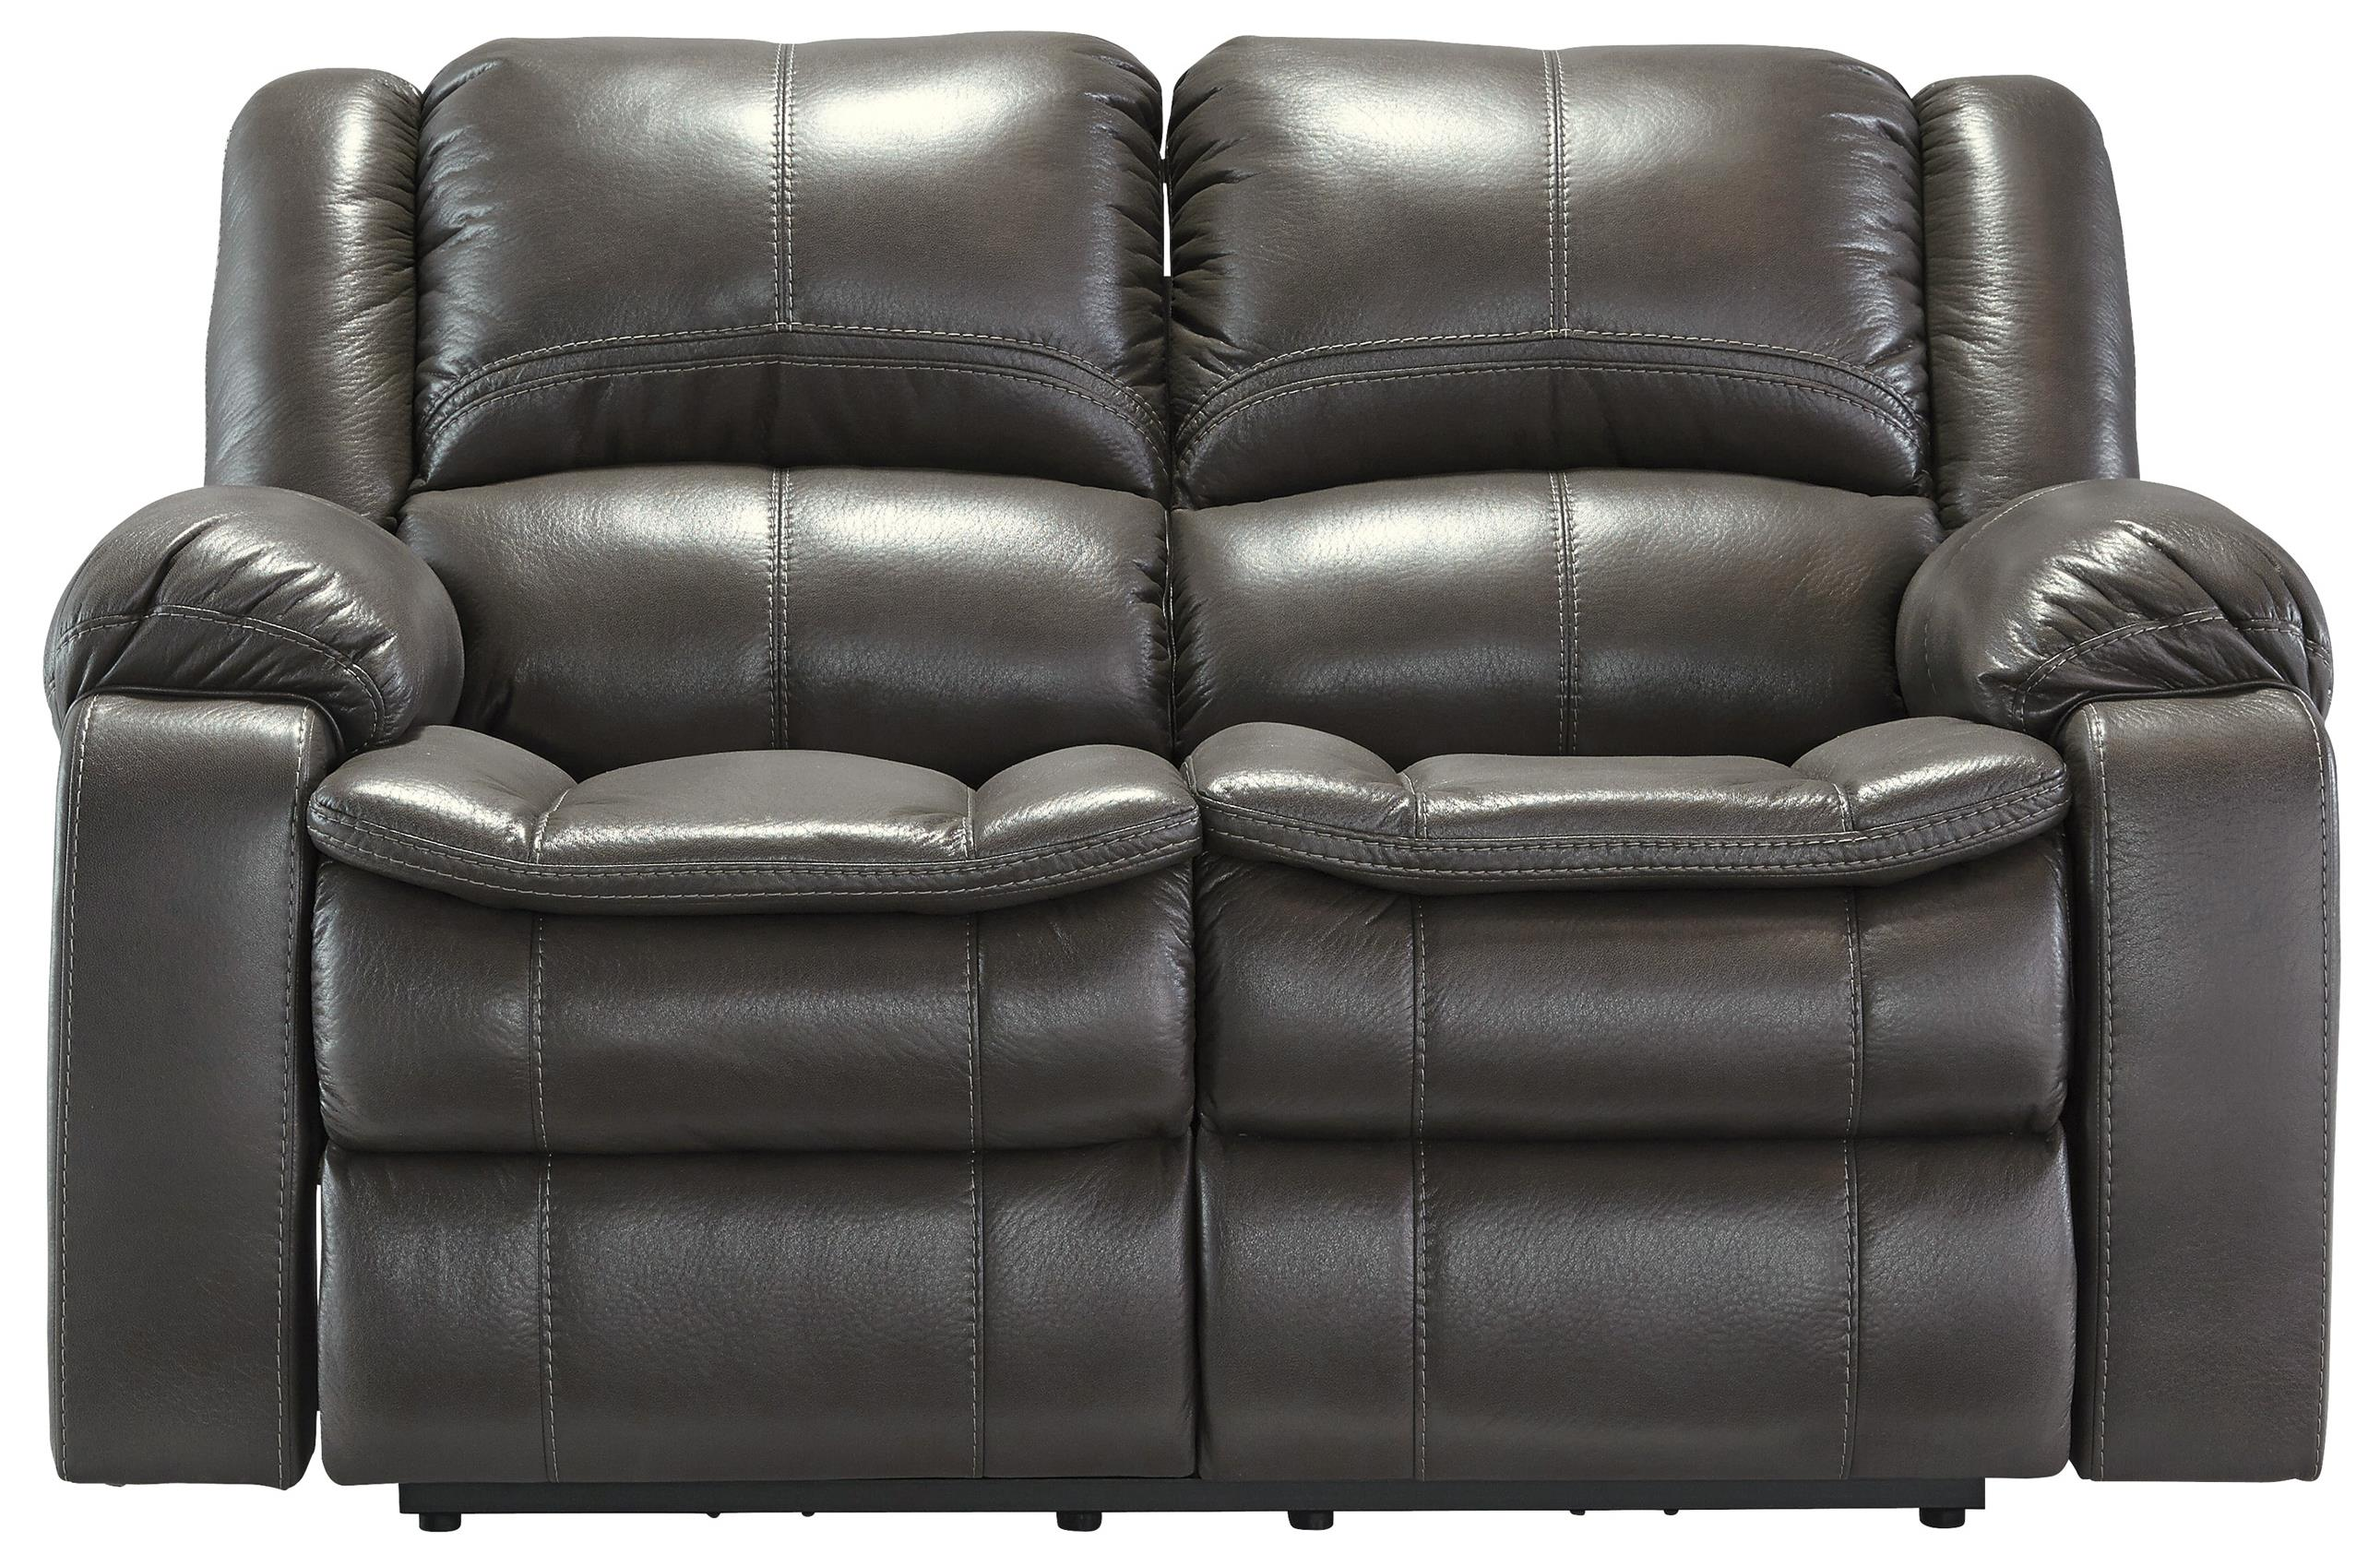 Signature Design by Ashley Long Knight Reclining Loveseat - Item Number: 8890686